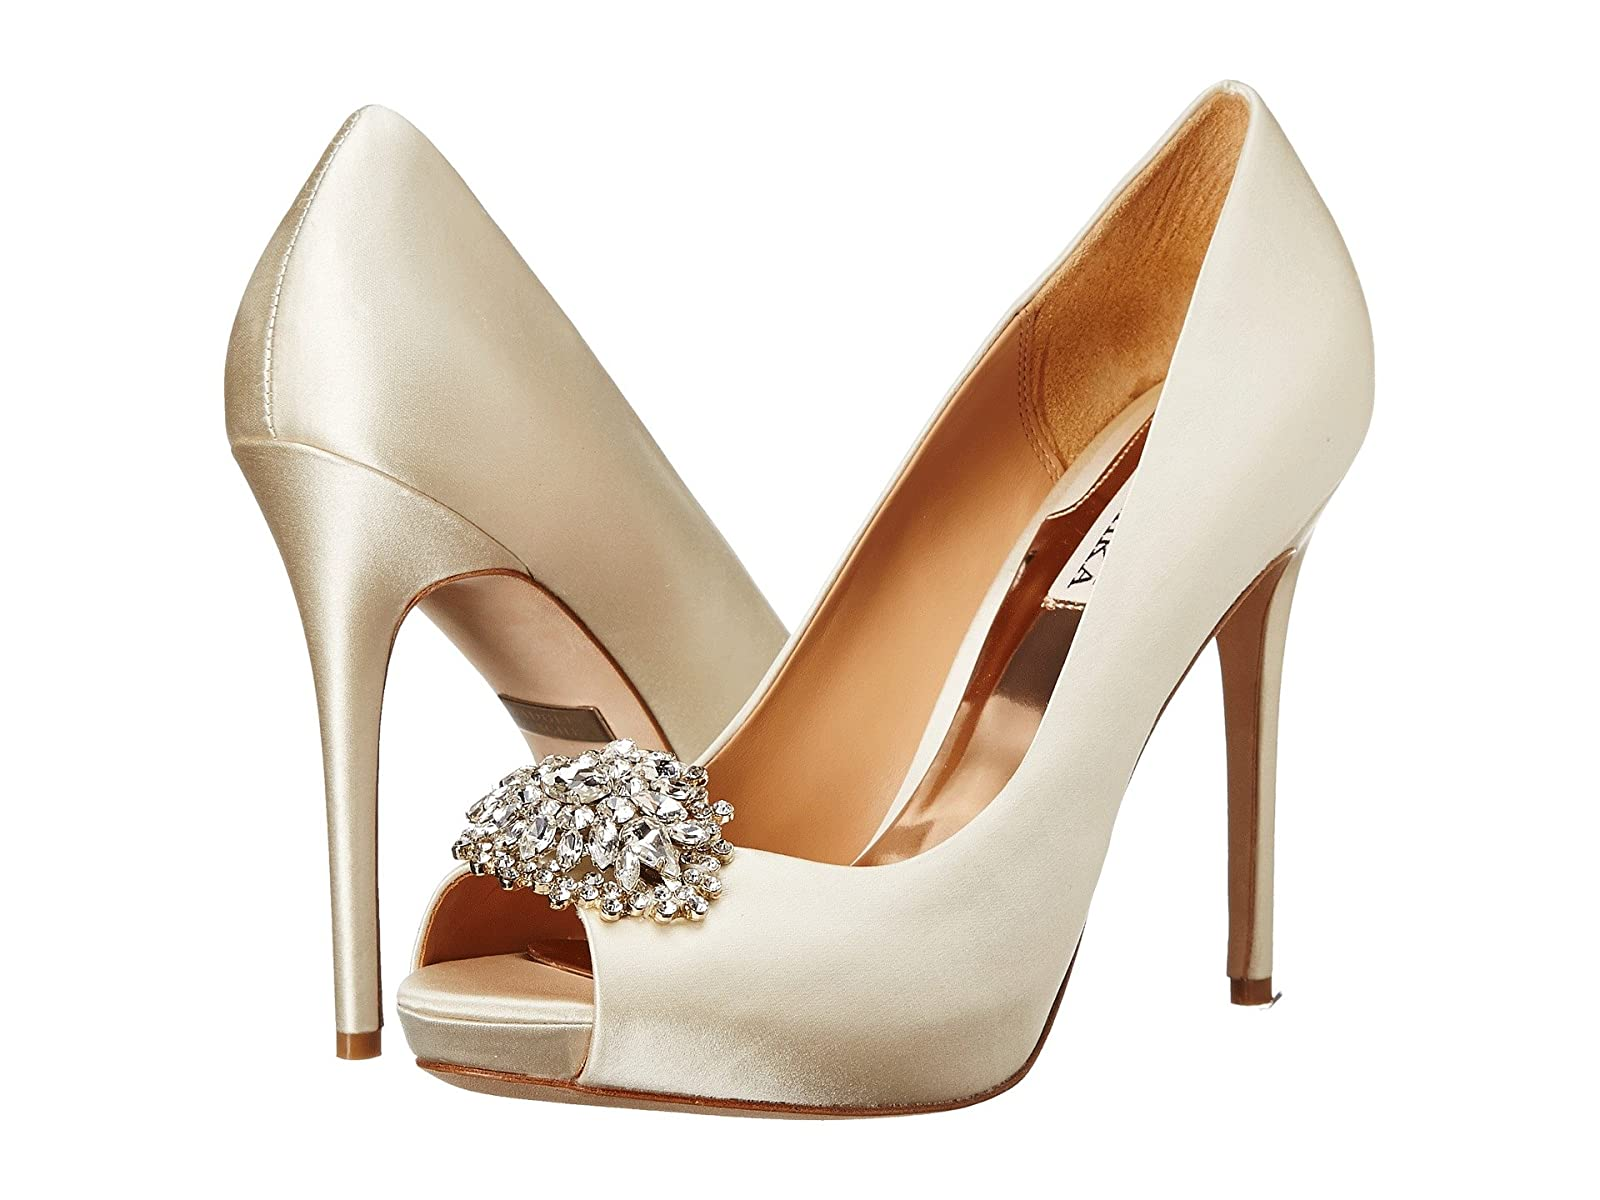 Badgley Mischka JeannieCheap and distinctive eye-catching shoes